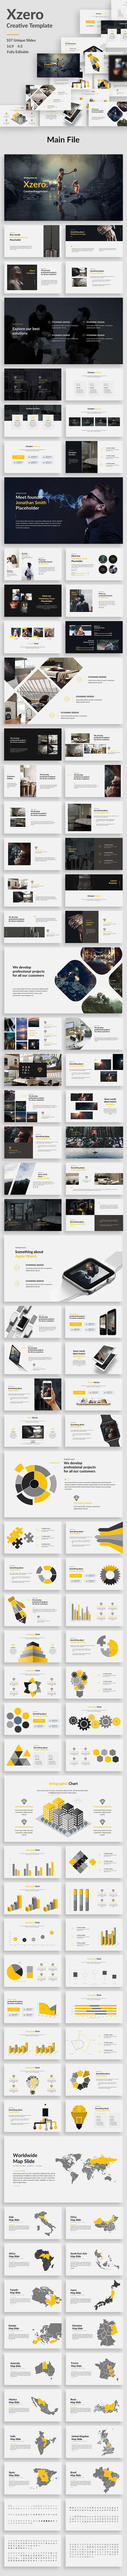 Xzero - Creative Keynote Template - Creative Keynote Templates